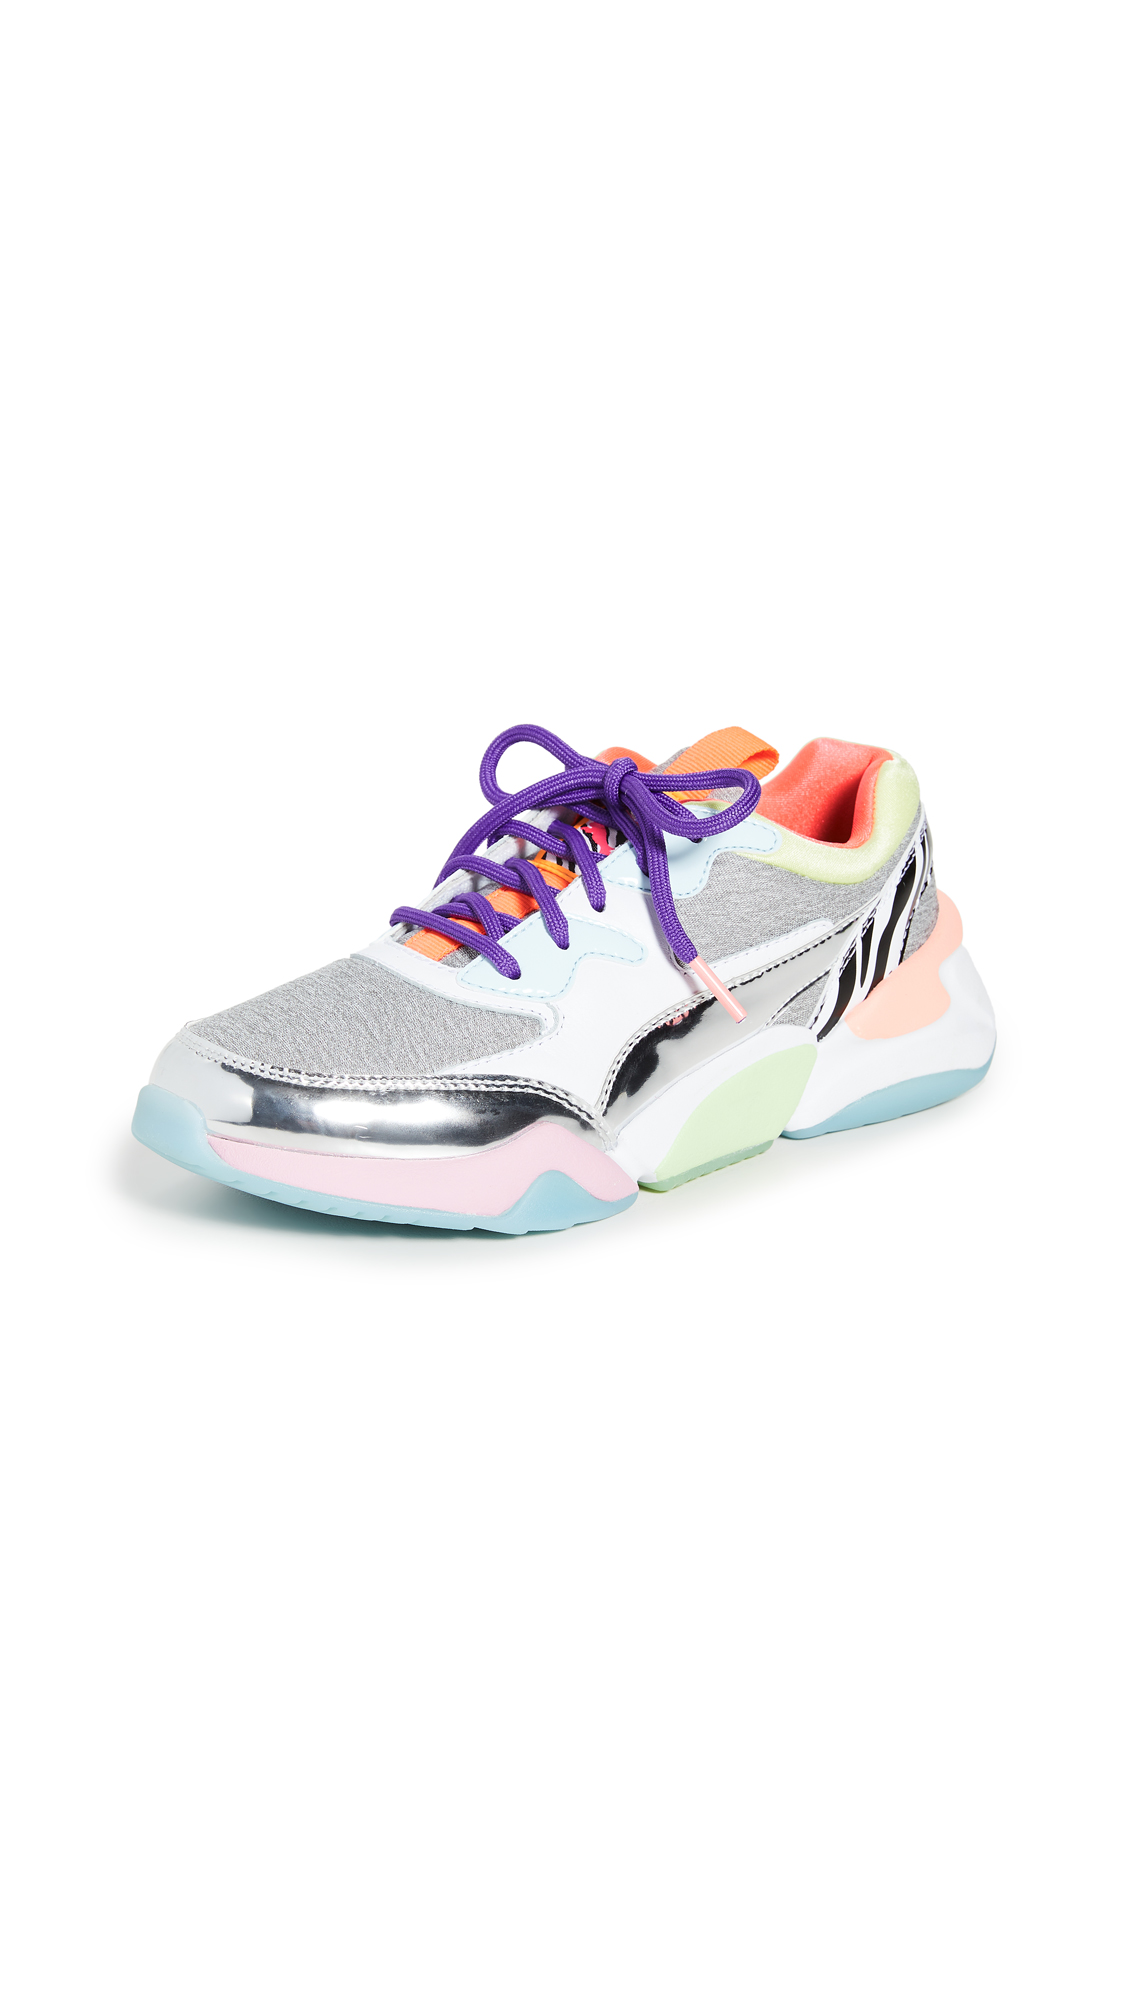 PUMA Nova Sophia Webster Sneakers – 30% Off Sale